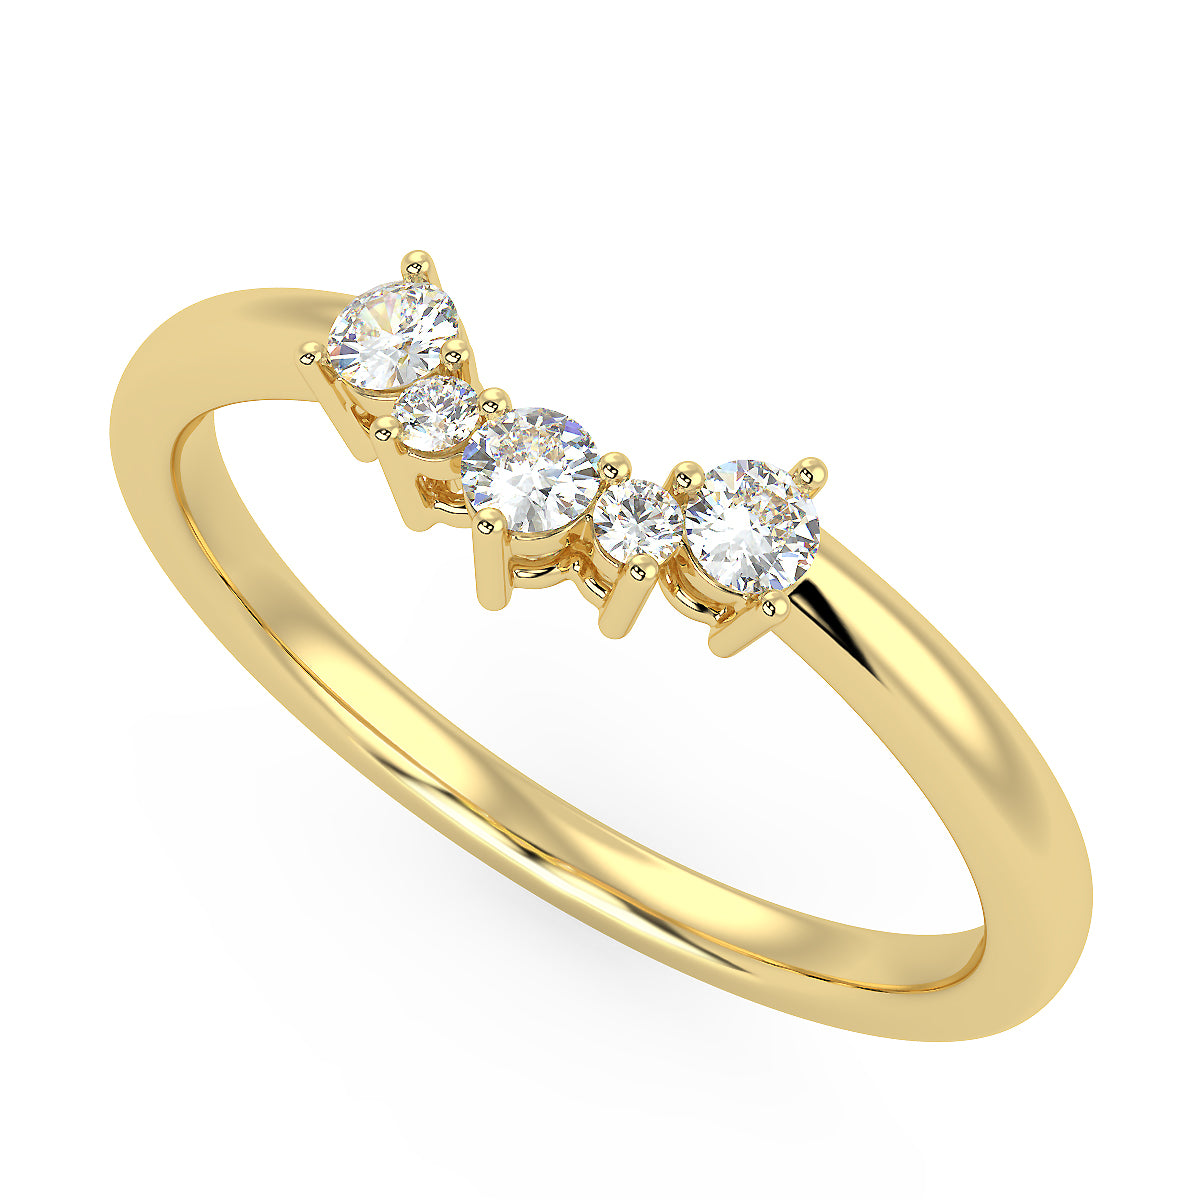 Radiance Band in Yellow Gold